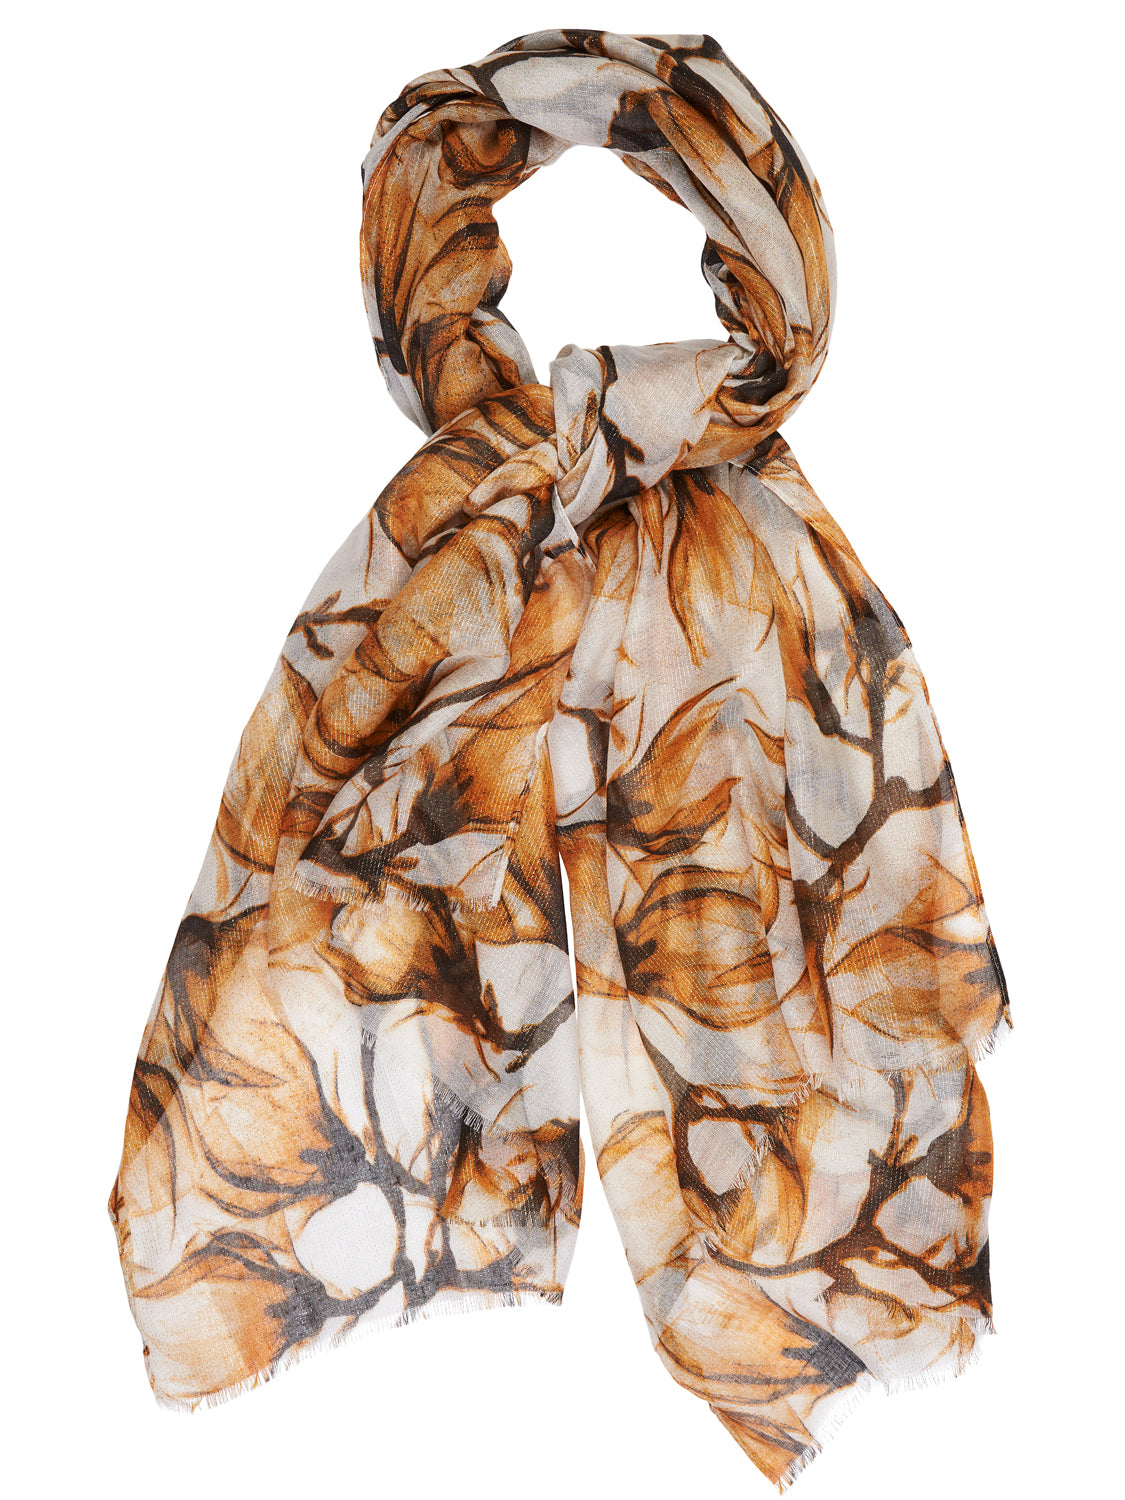 Metallic Yarn Floral Scarf